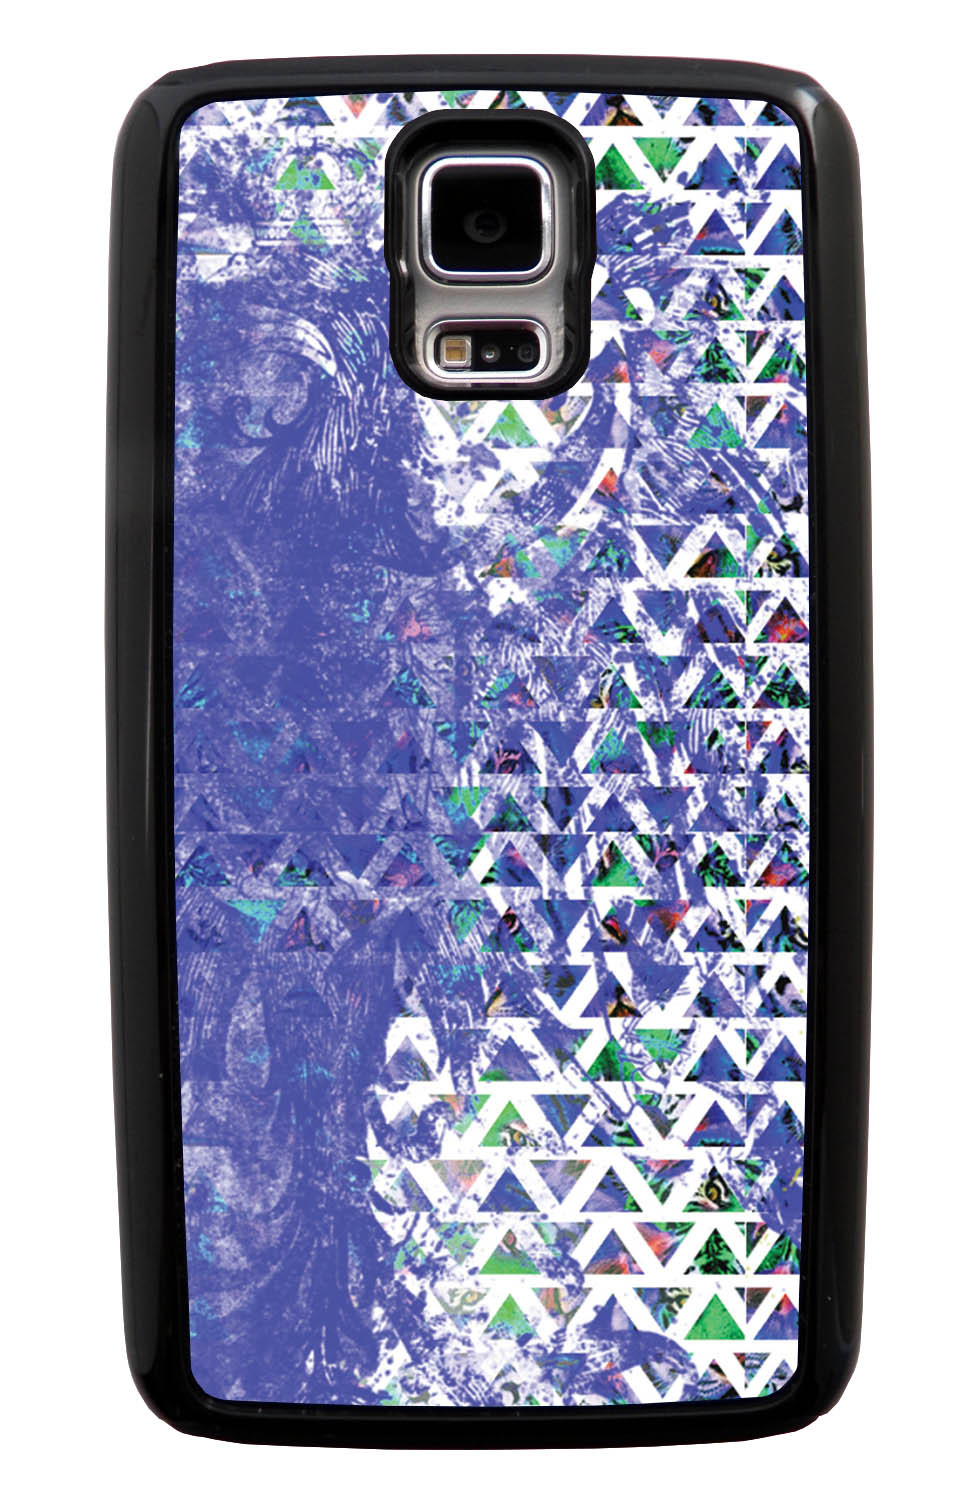 Samsung Galaxy S5 / SV Aztec Case - Purple Smear Paint with Green and White - Paint Splatter Overlay - Black Tough Hybrid Case